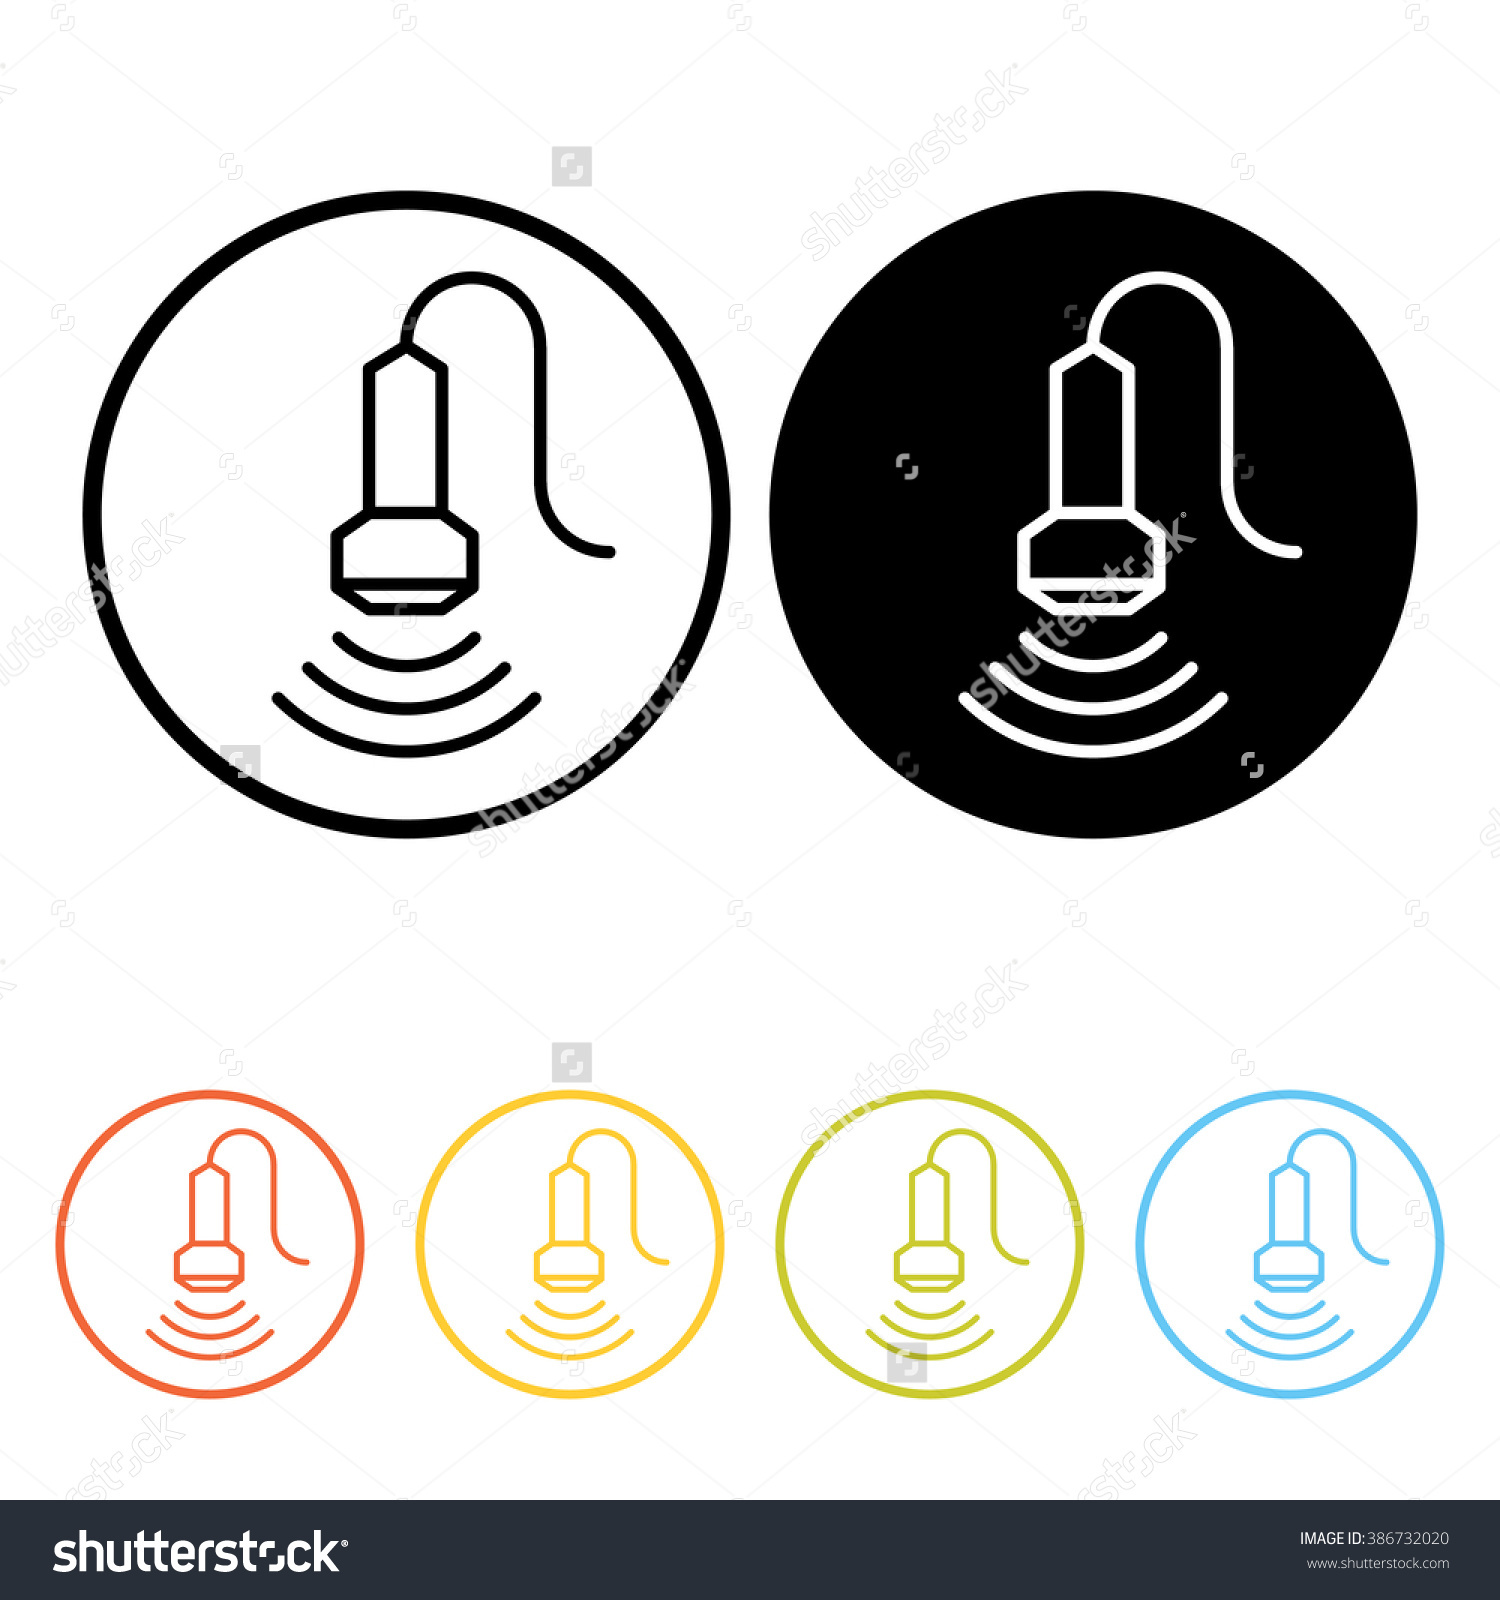 Medical Ultrasound Pictogram Thin Line Icons Stock Vector.